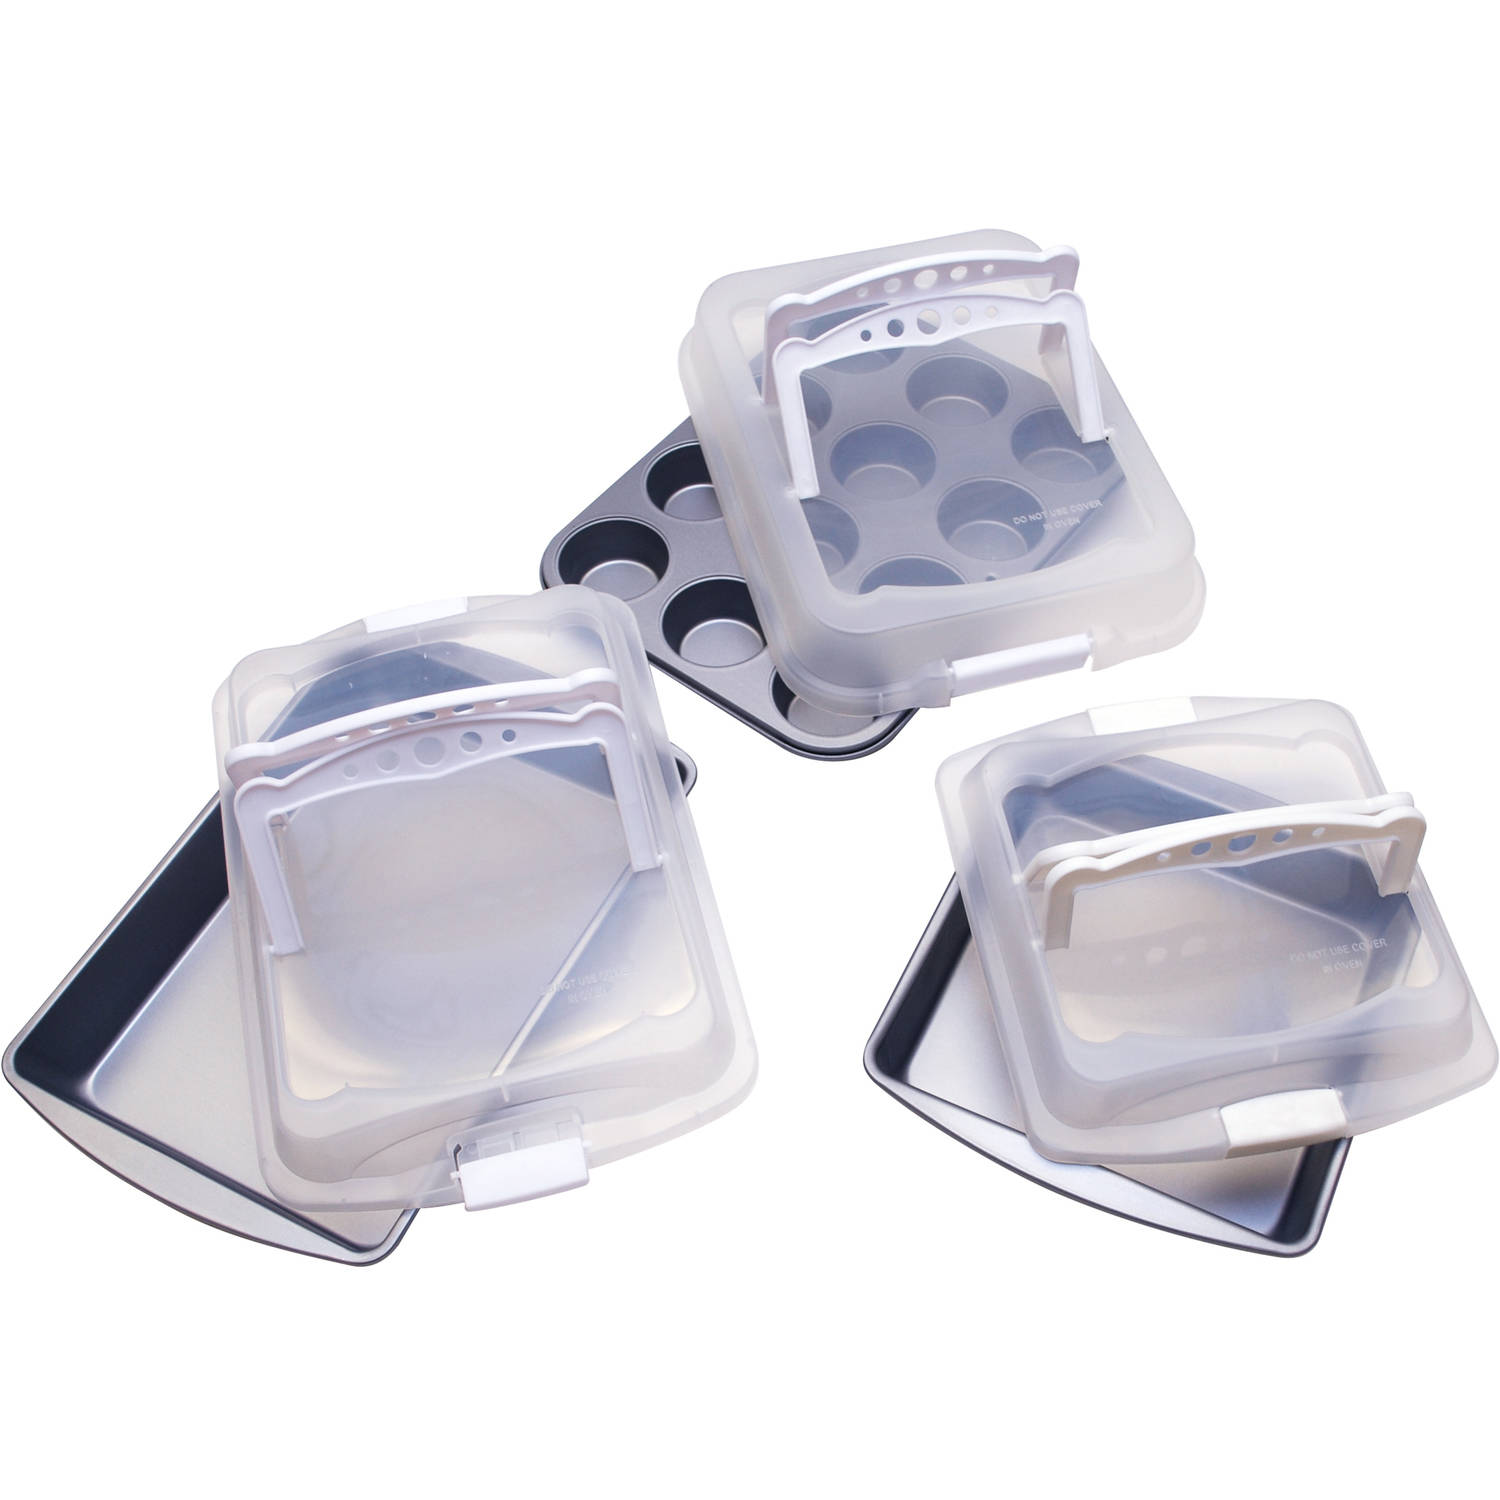 BakerEze Non-Stick 6-Piece Covered Bakeware Set with Handles